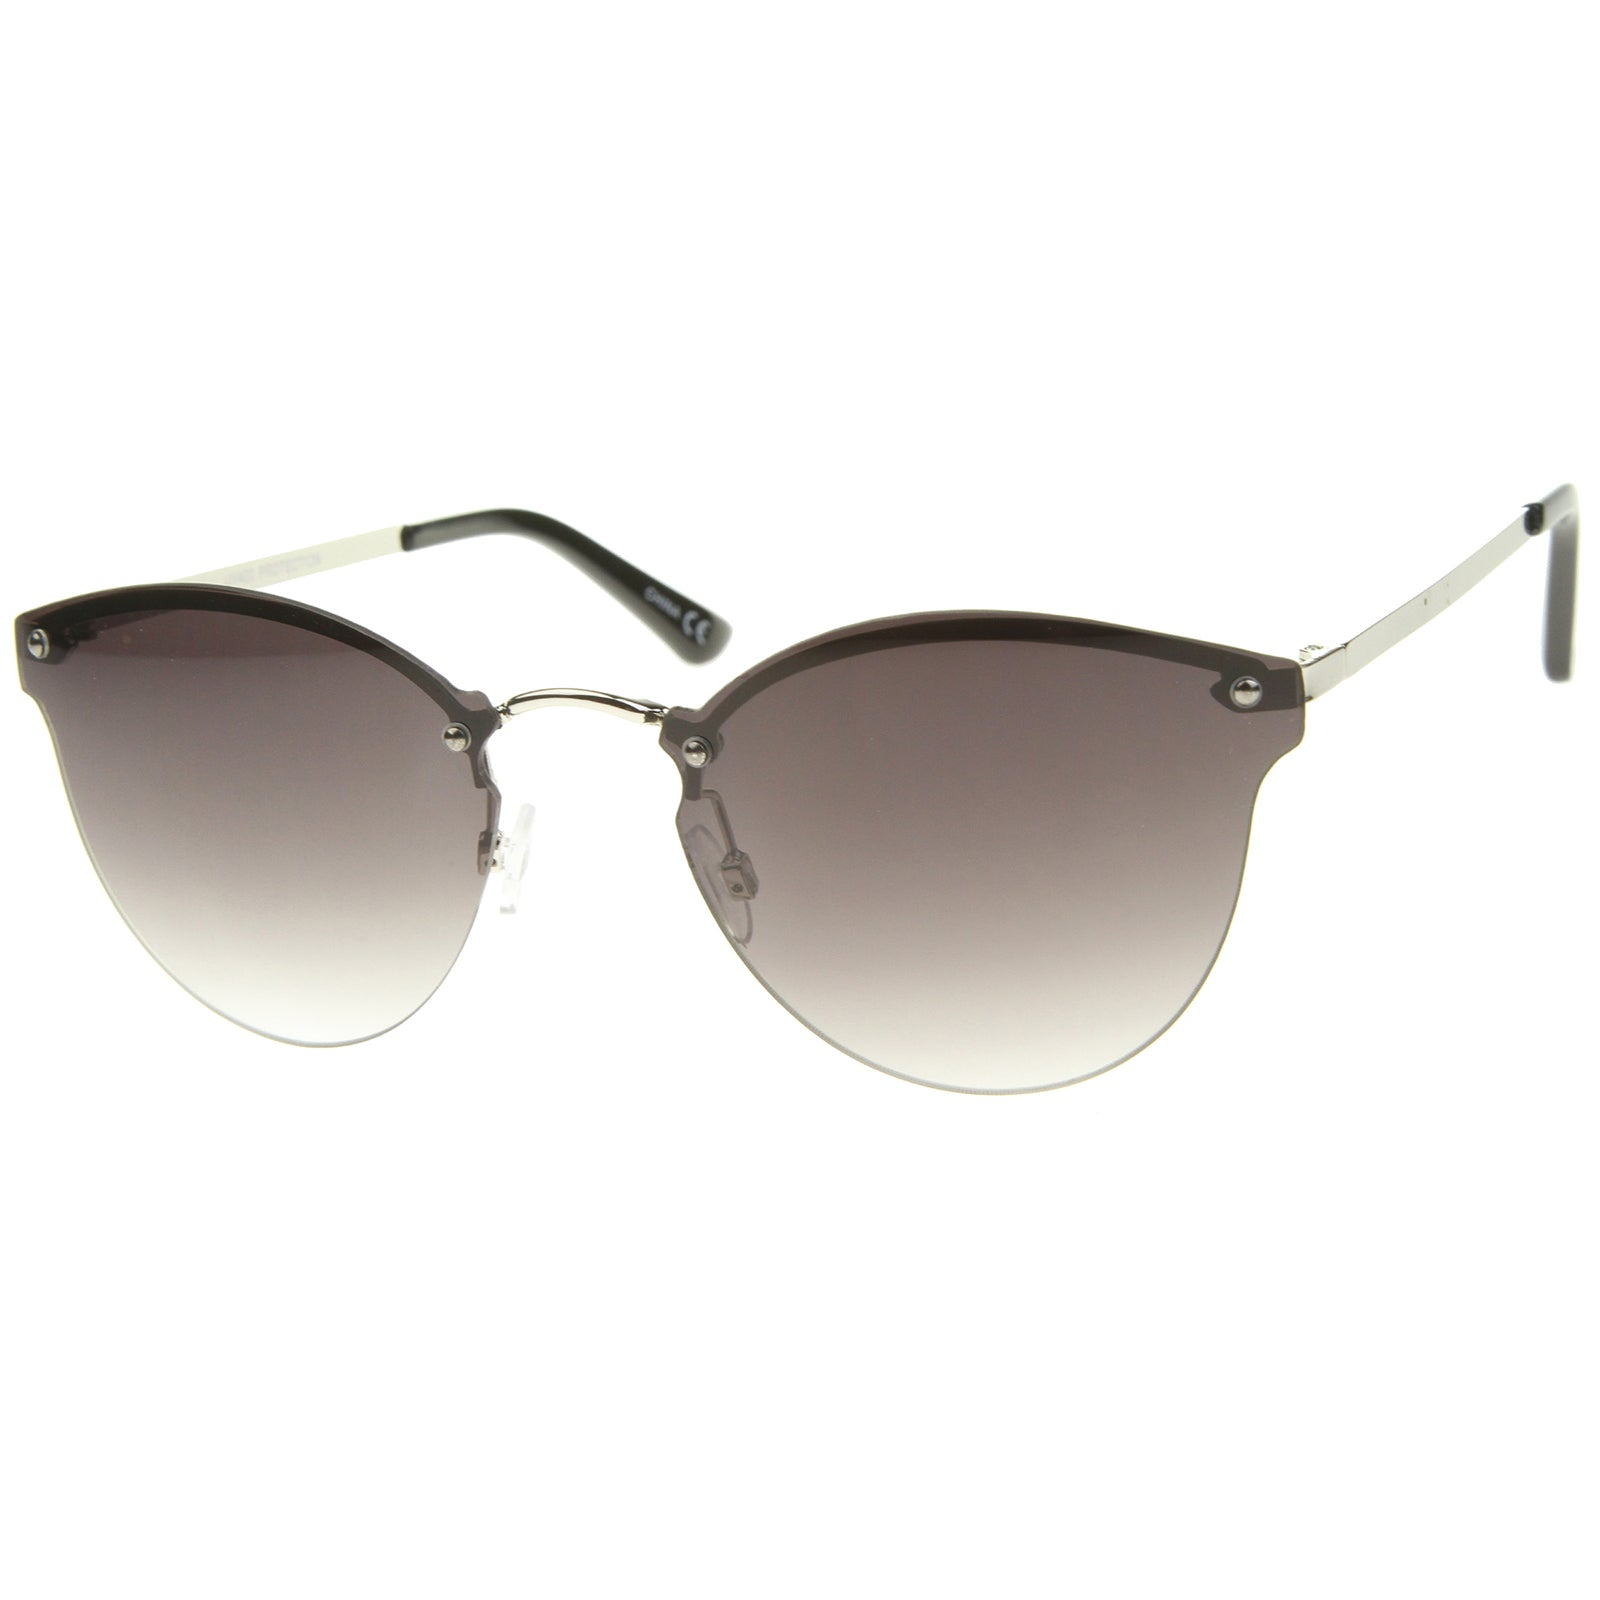 Womens Fashion Lightweight Rimless Metal Temple Cat Eye Sunglasses - sunglass.la - 6